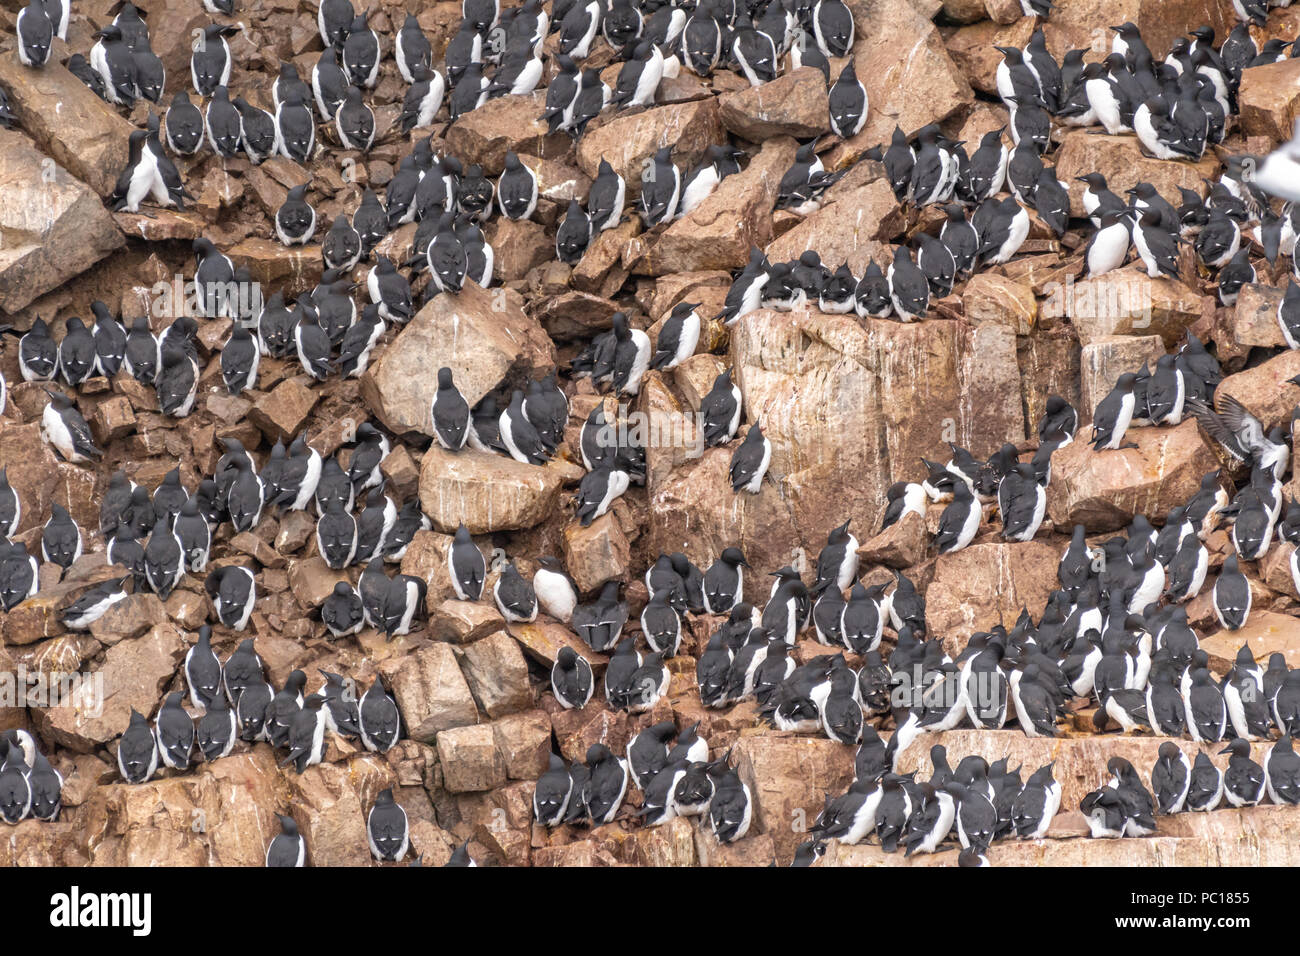 Brünnich's guillemots(Uria lomvia) also known as thick-billed murres on their nesting grounds on the cliff at Alkefjellet in the Svalbard archipelago. Stock Photo